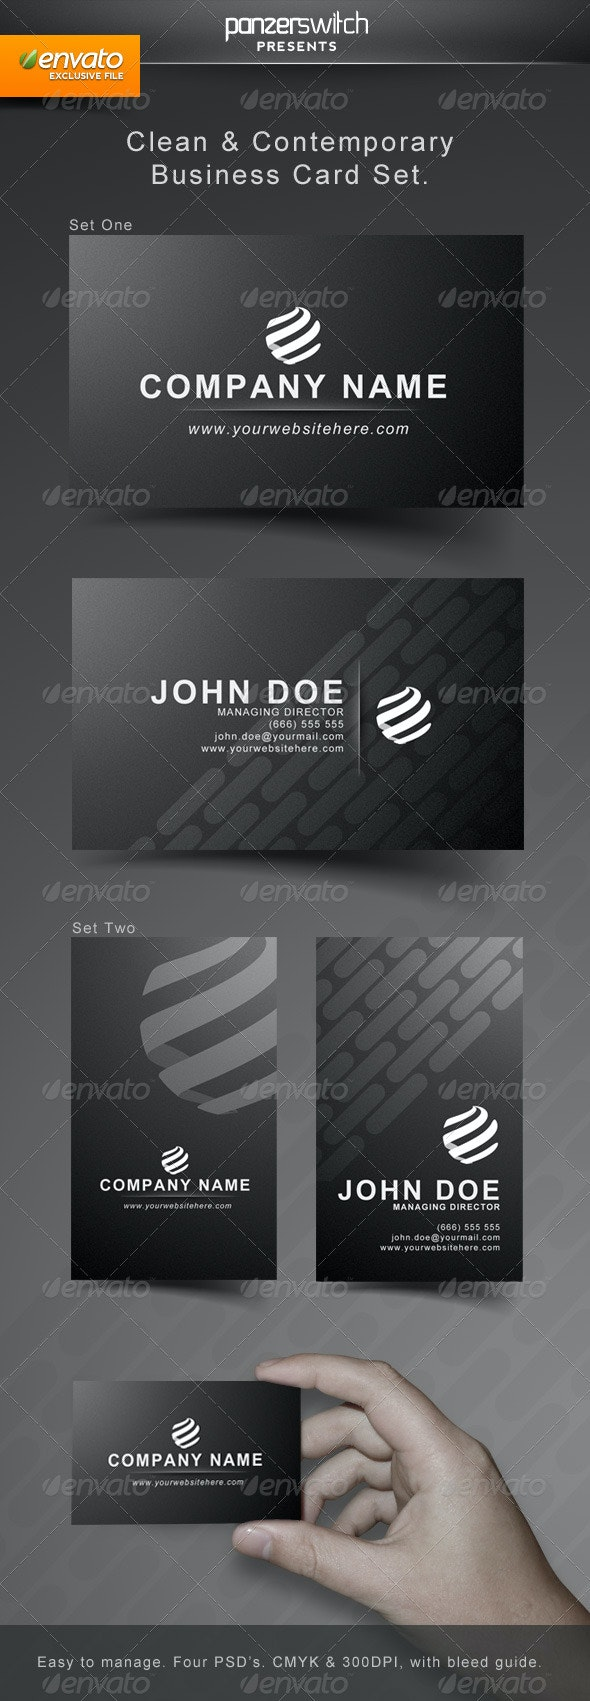 Clean & Modern Business Card Set - Corporate Business Cards